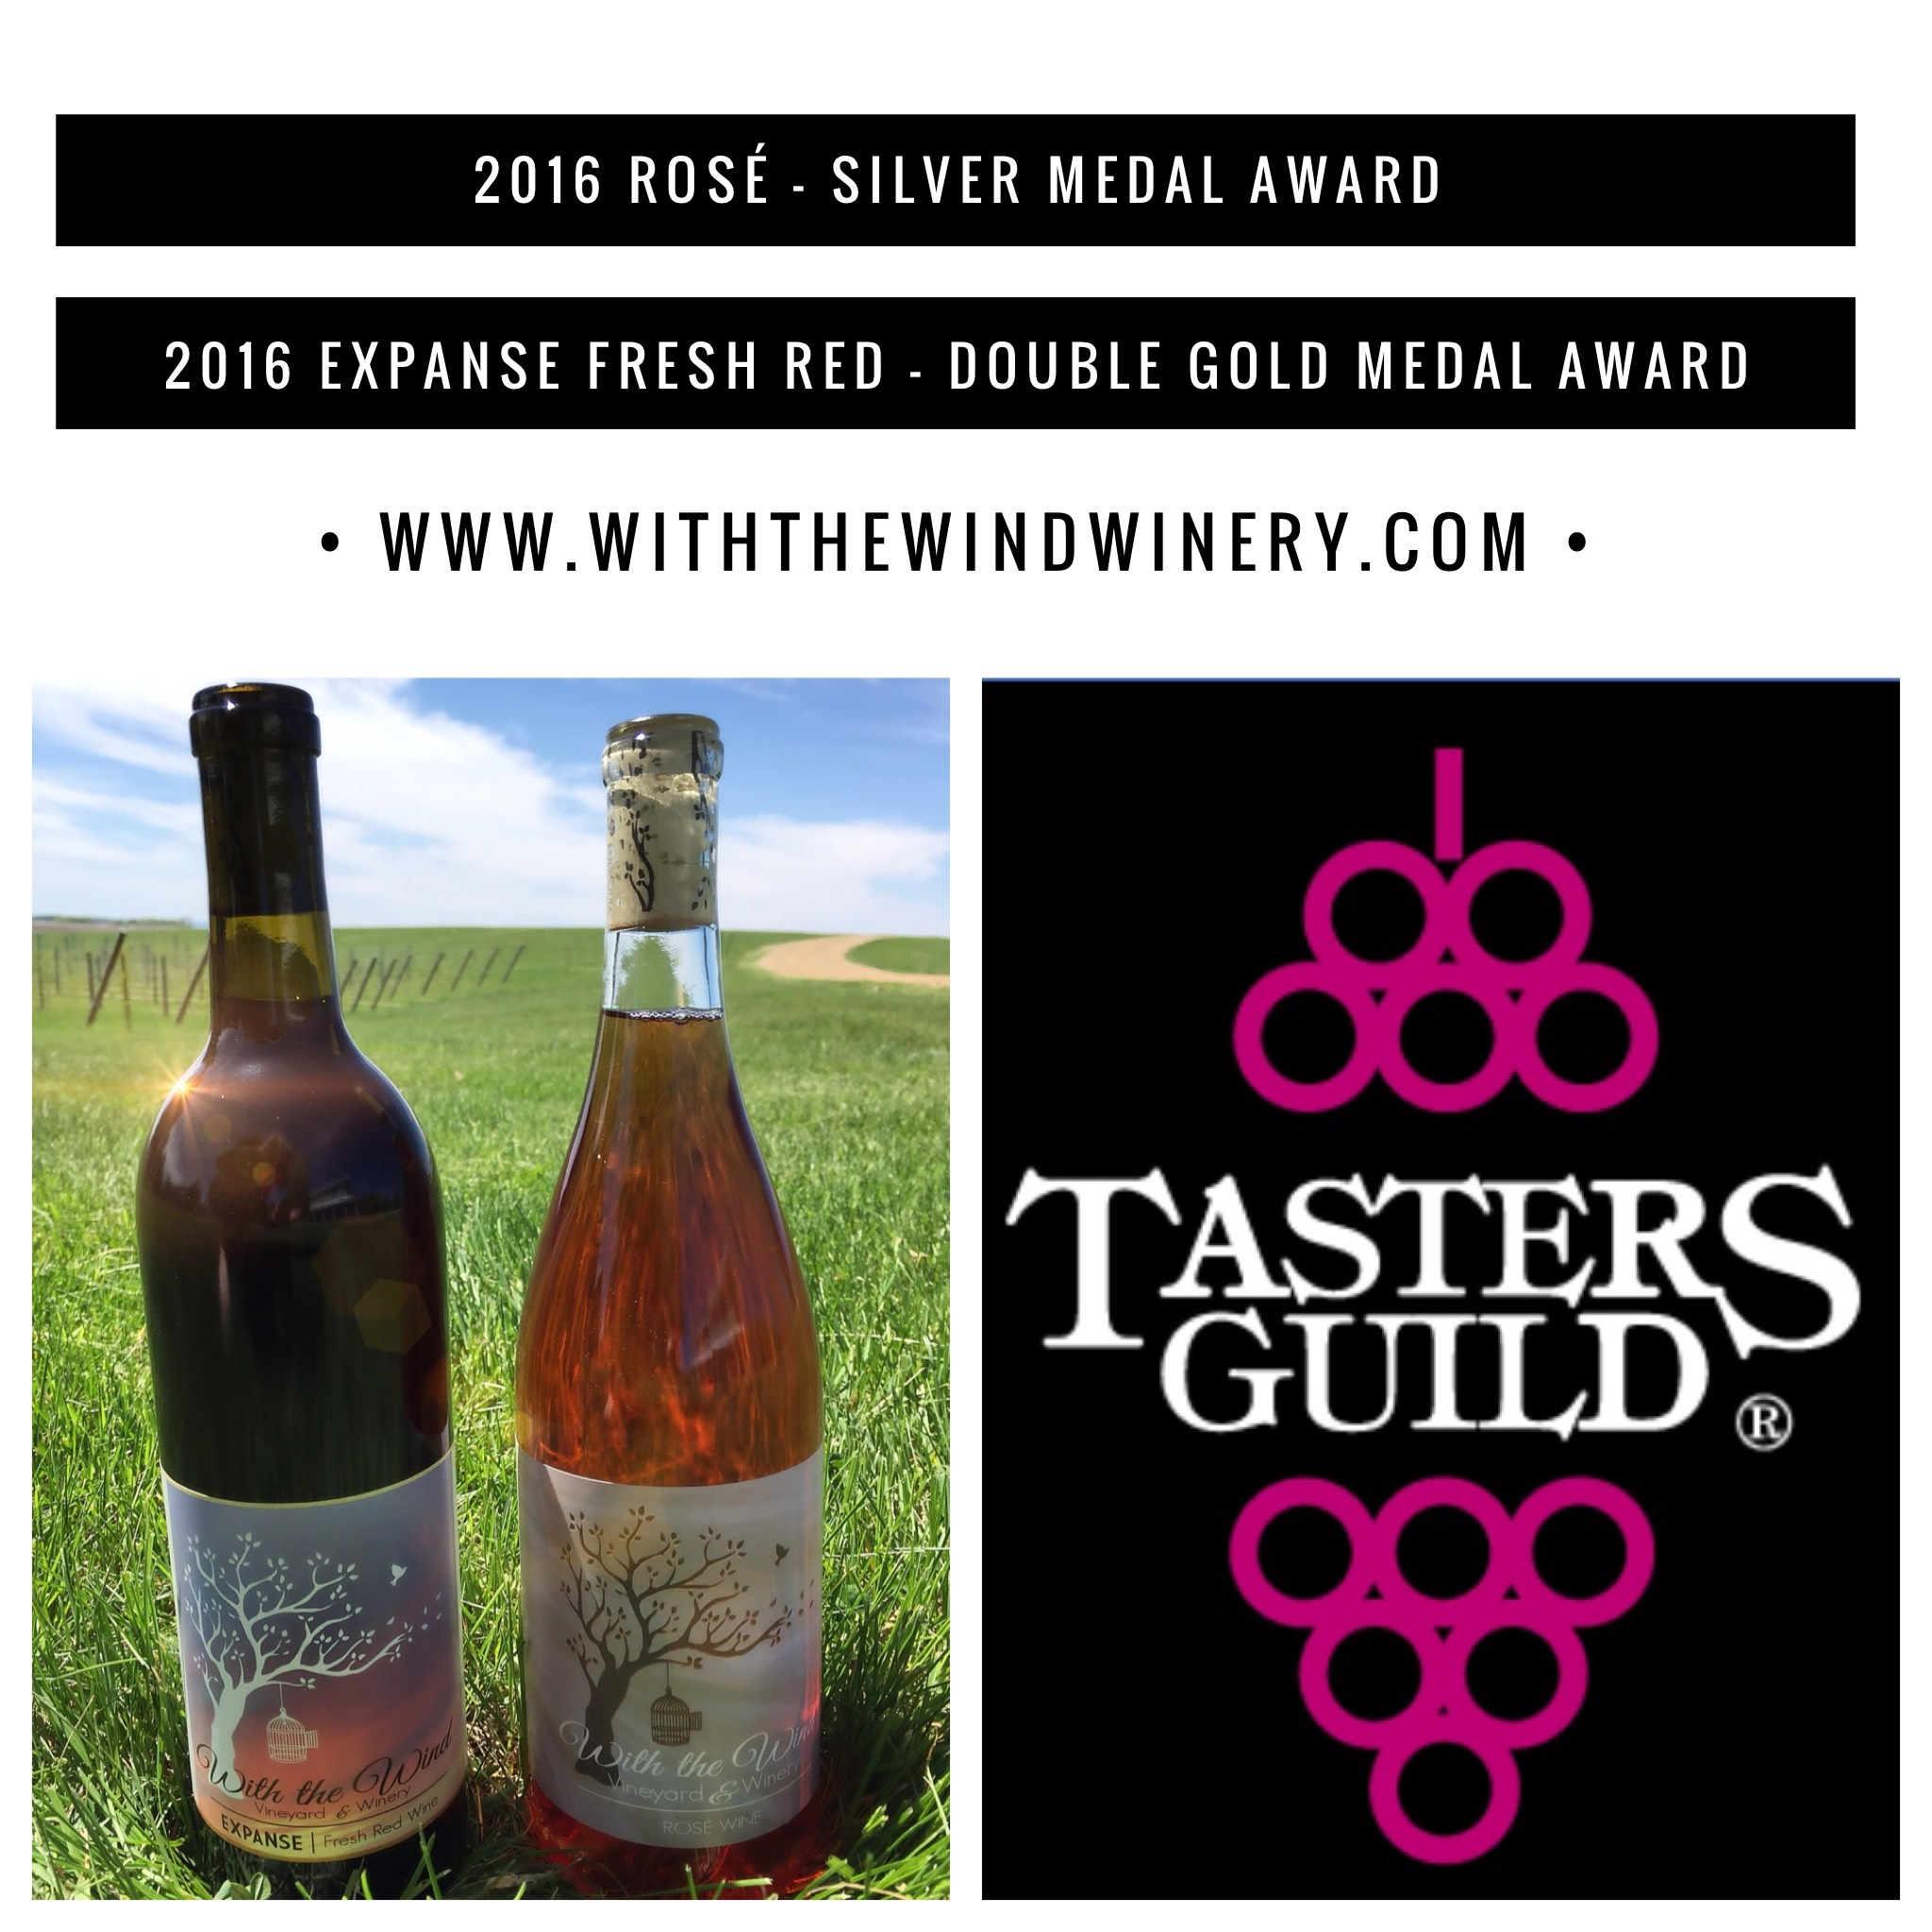 """May 2018 - With the Wind Vineyard & Winery is honored to accept both Double Gold and Silver Awards on two of our locally-grown favorites! Judges comments included: """"We experienced some exceptionally good proprietary blends. Wineries are excelling at processing the best fruit possible from their region...to produce superb signature wines for the consuming public to experience."""""""